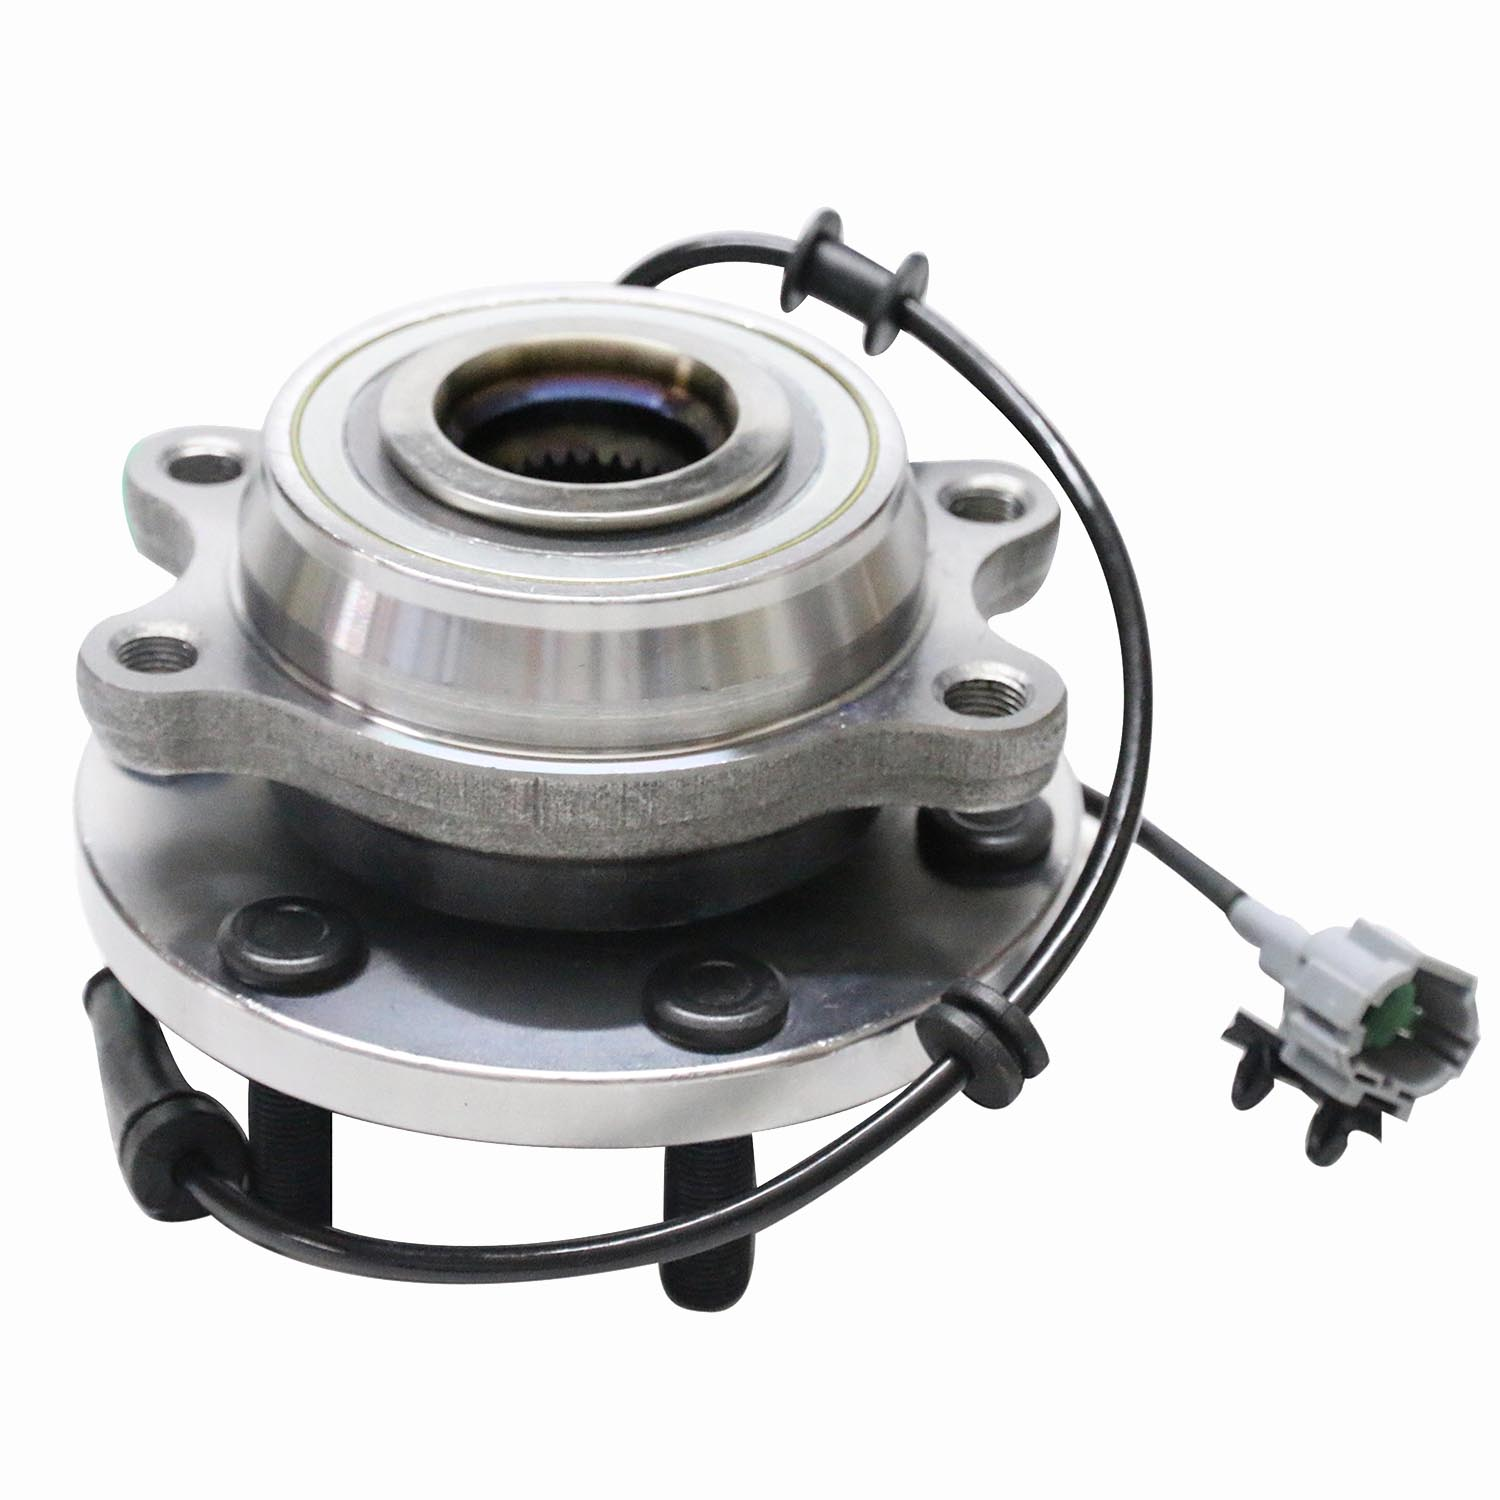 Brand Front Wheel Hub Bearing Assembly For Fits Frontier Pathfinder Xterra 4WD